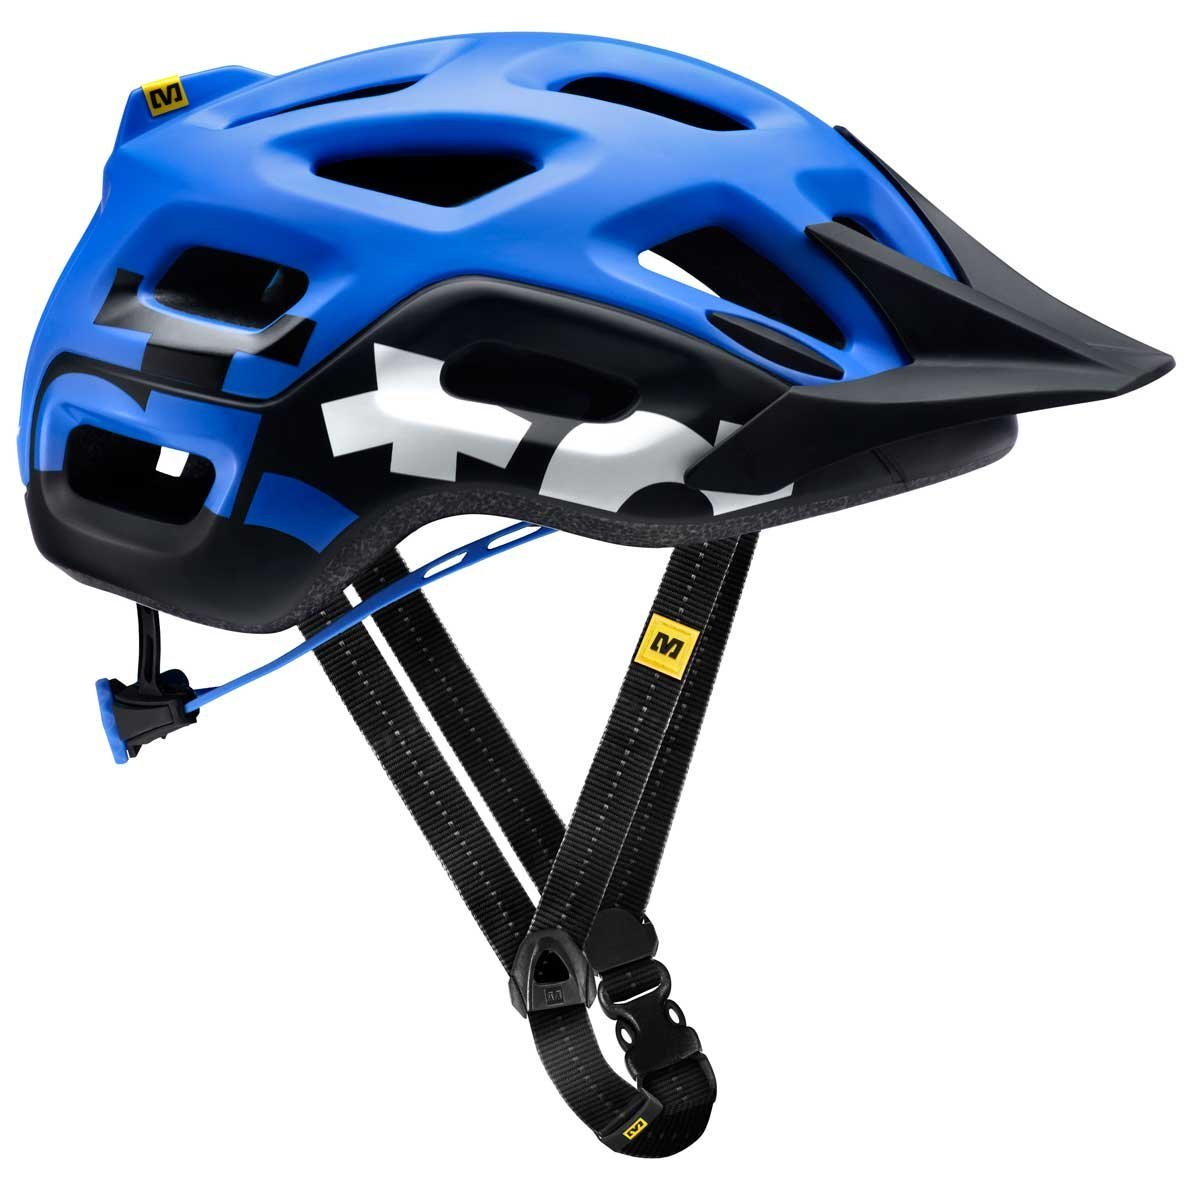 Blue Mavic Bicycle Helmets